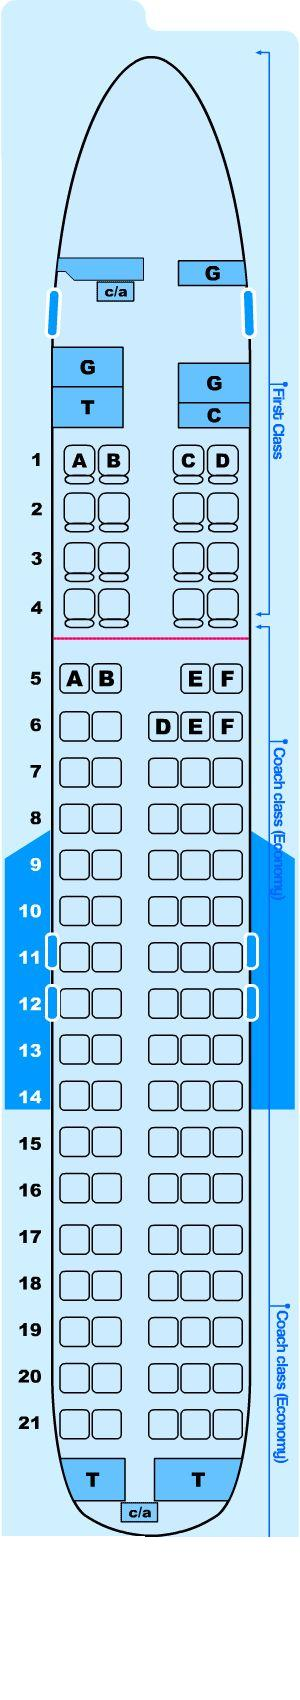 Seat map for Northwest Airlines McDonnell Douglas DC9-30